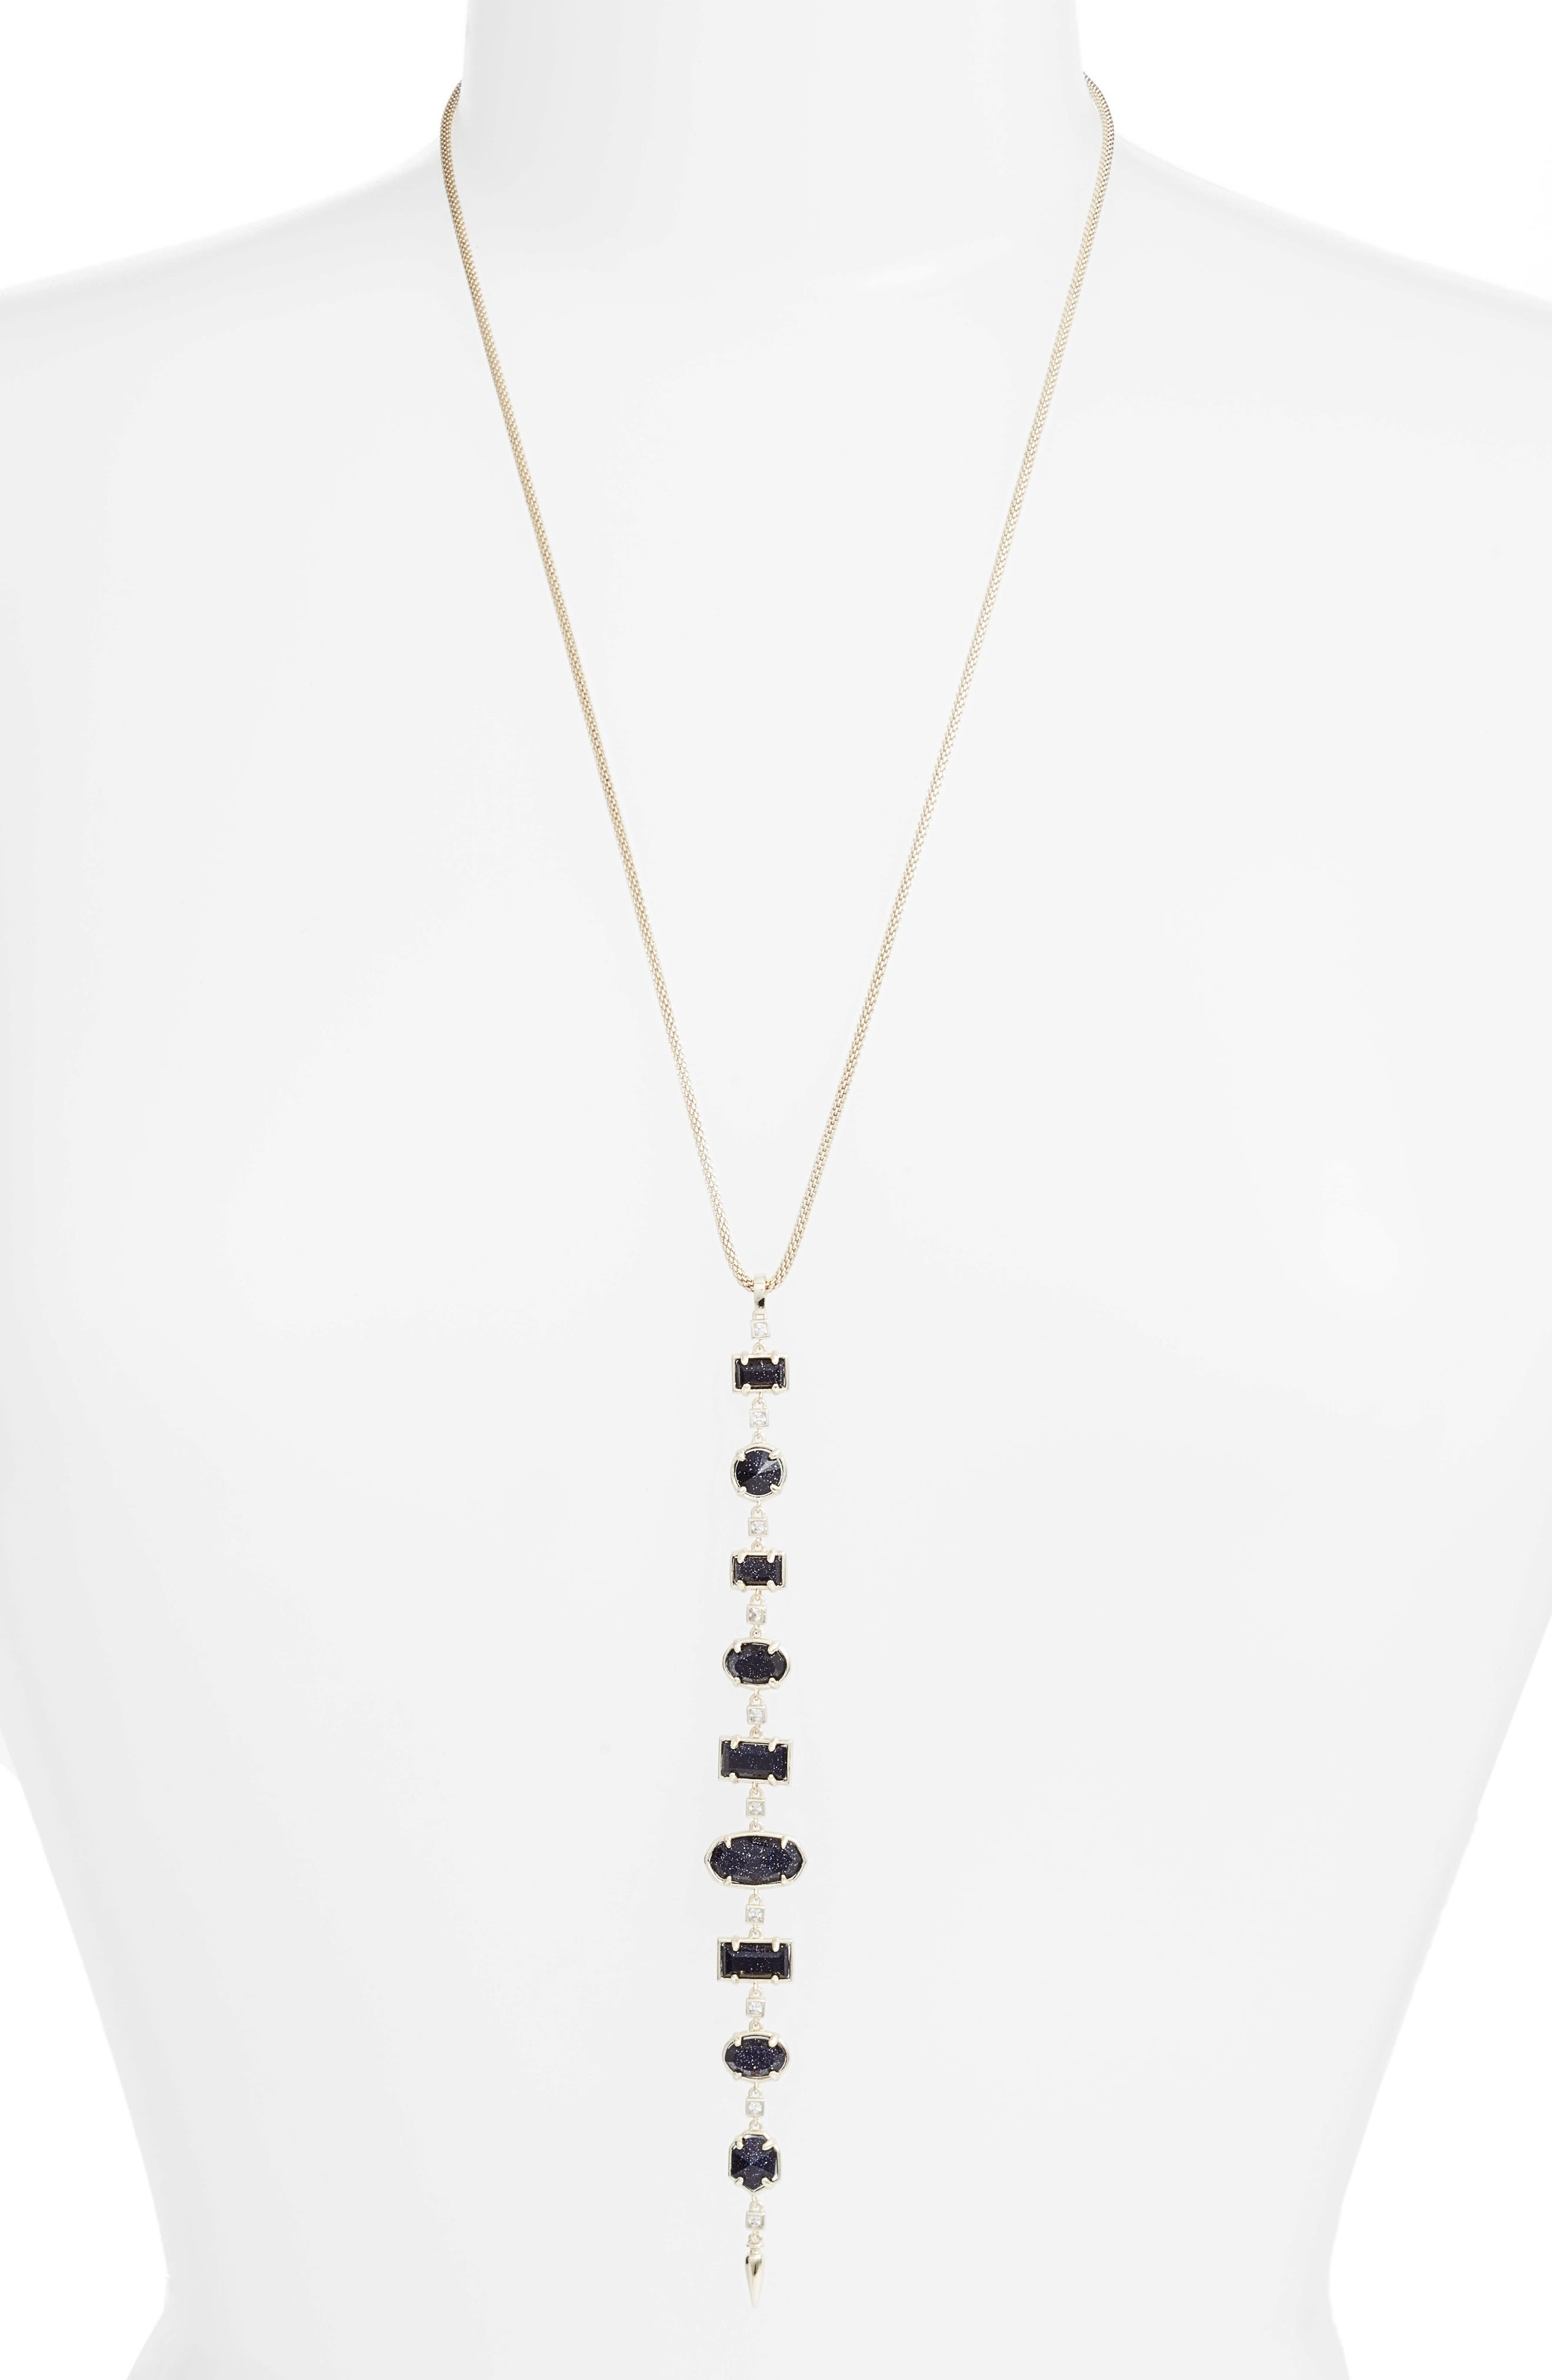 Main Image - Kendra Scott Braxton Stone Drop Pendant Necklace (Nordstrom Exclusive)